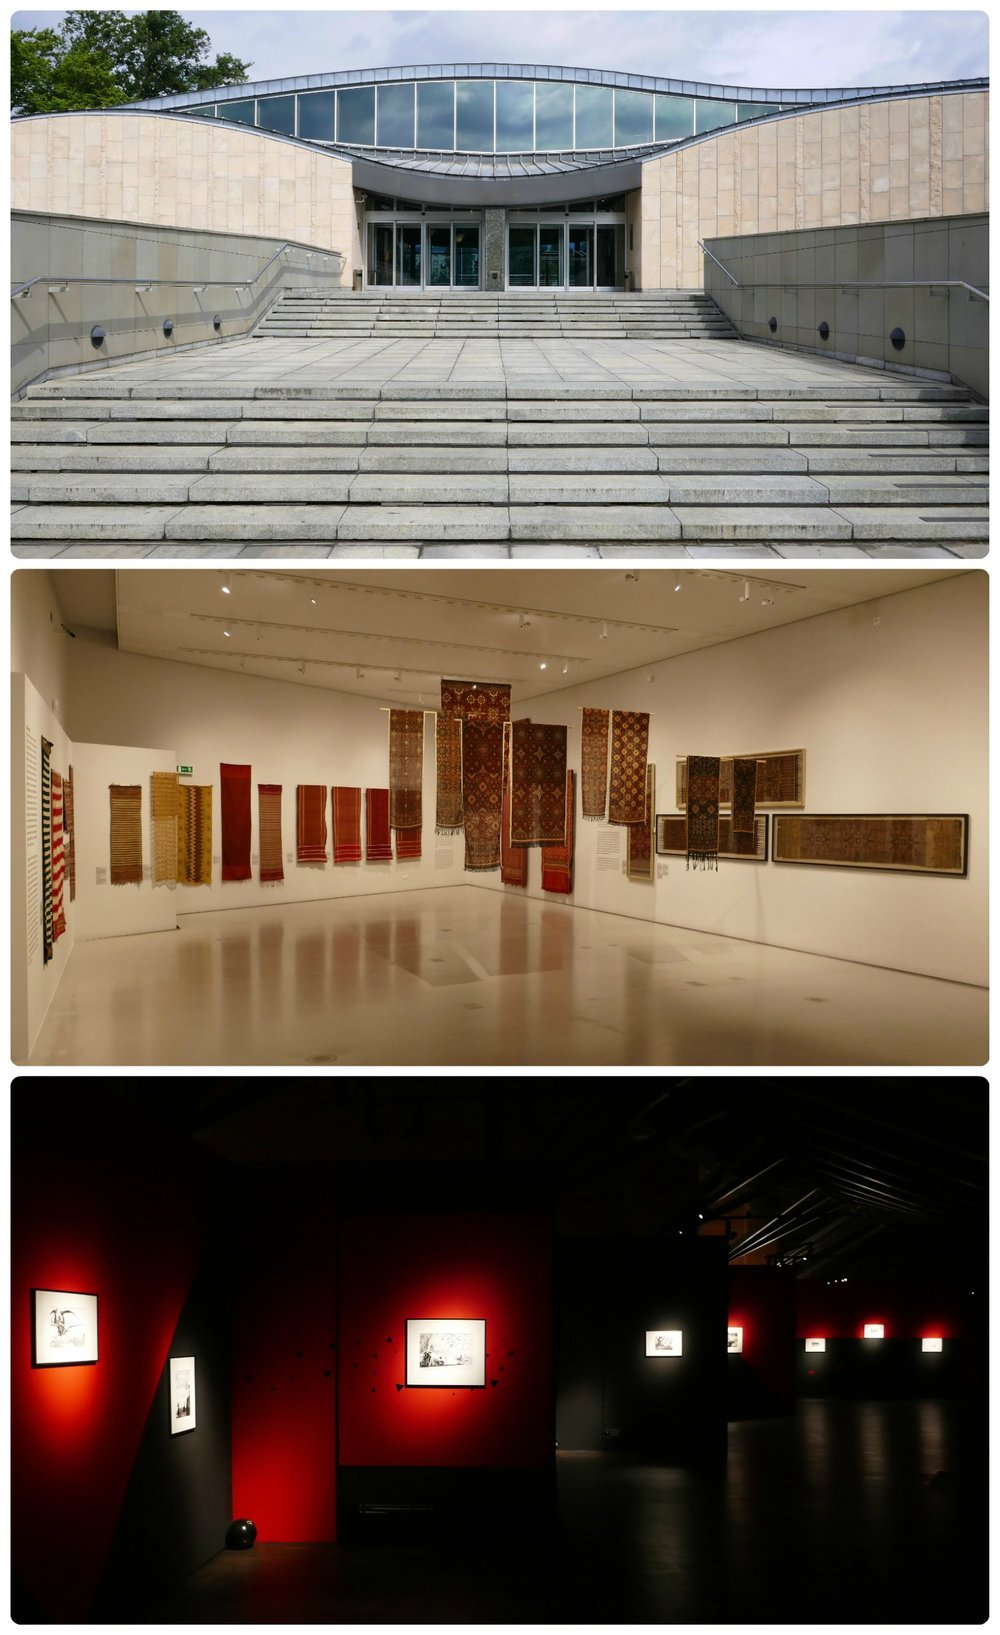 We didn't expect a Japanese art museum to be in Krakow, Poland, but we're glad we took the time to visit the Manggha Centre. The exhibits were well done and while it was a Japanese Art Museum, they featured Polish exhibits as well.